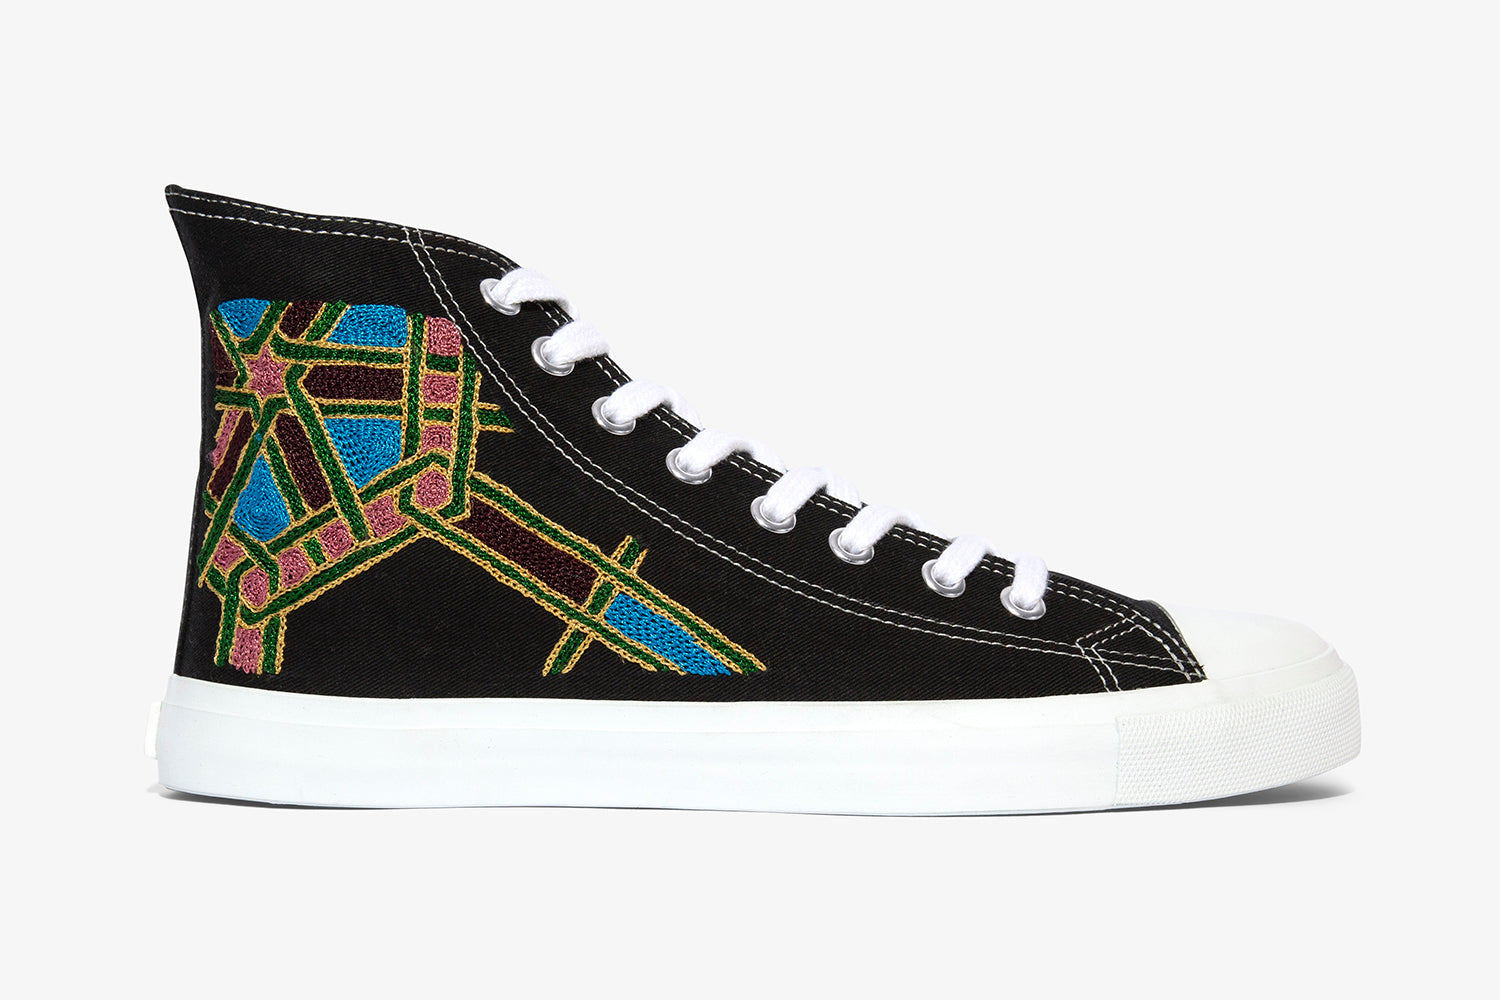 black high tops with hand embroidery I designer sneakers